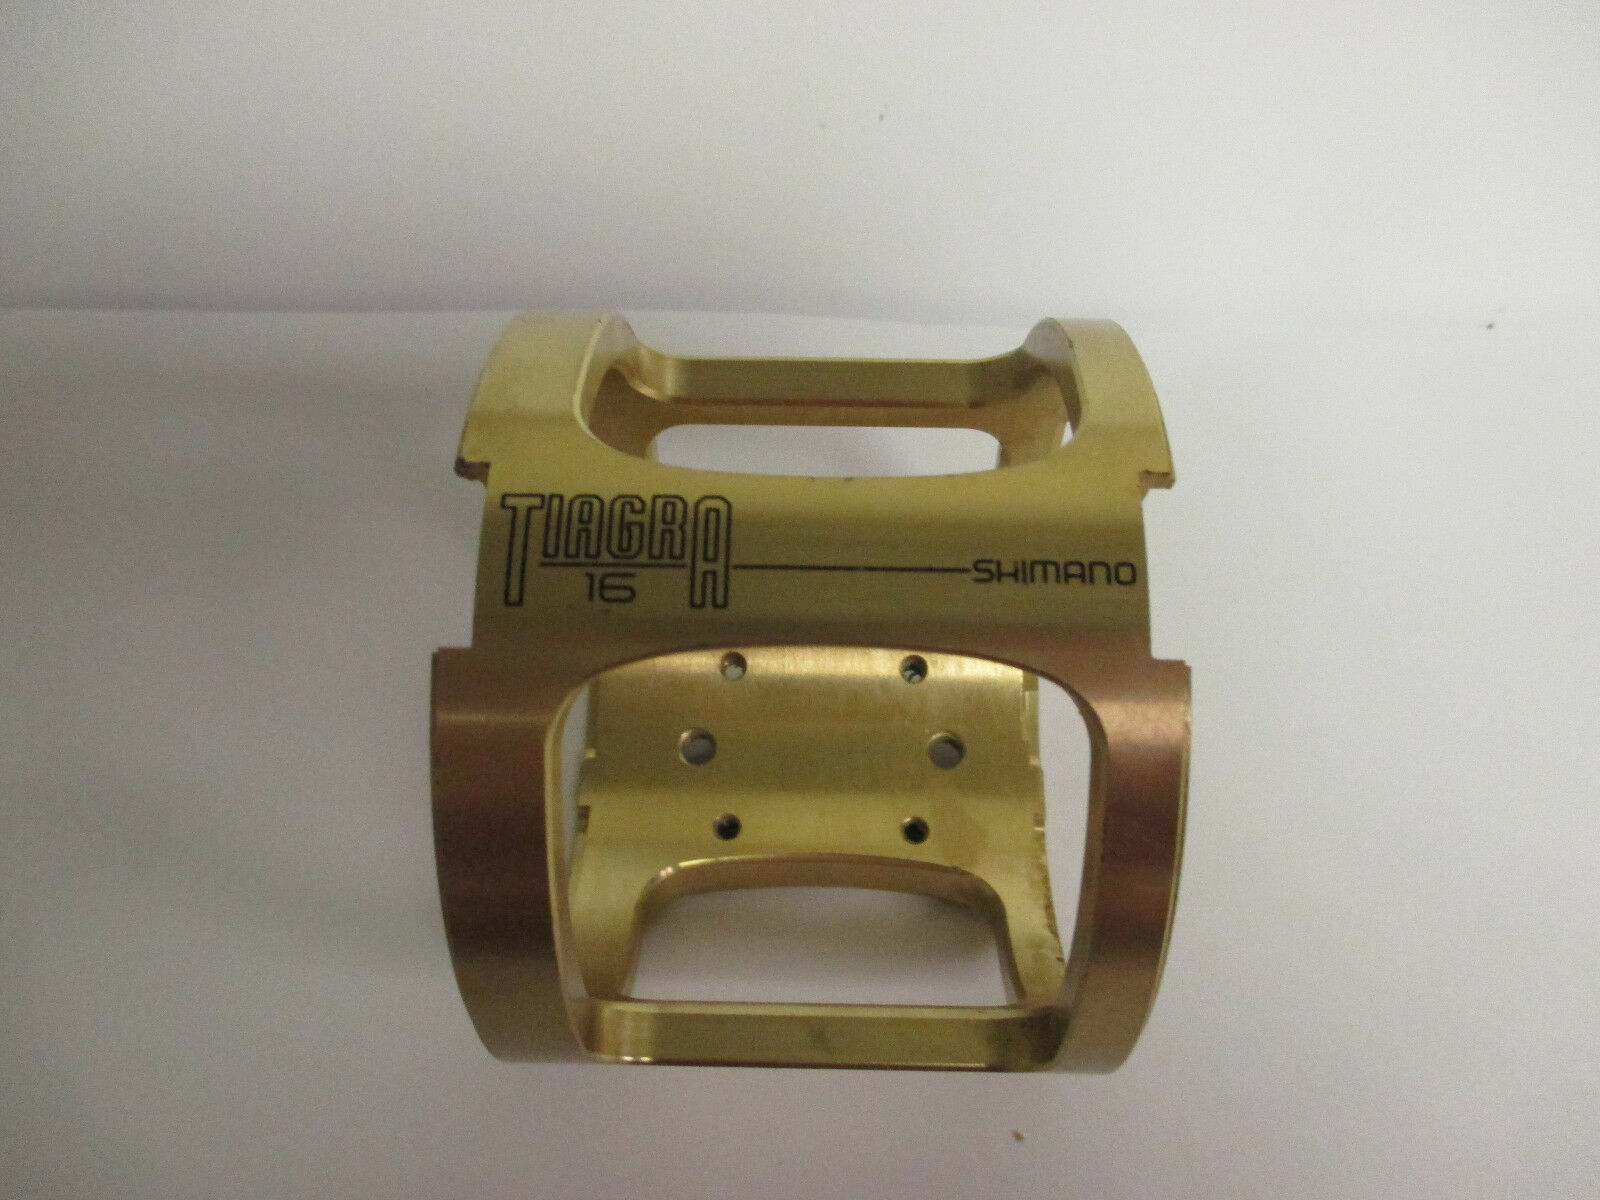 USED SHIMANO BIG GAME REEL PART  Tiagra 16  Frame   D